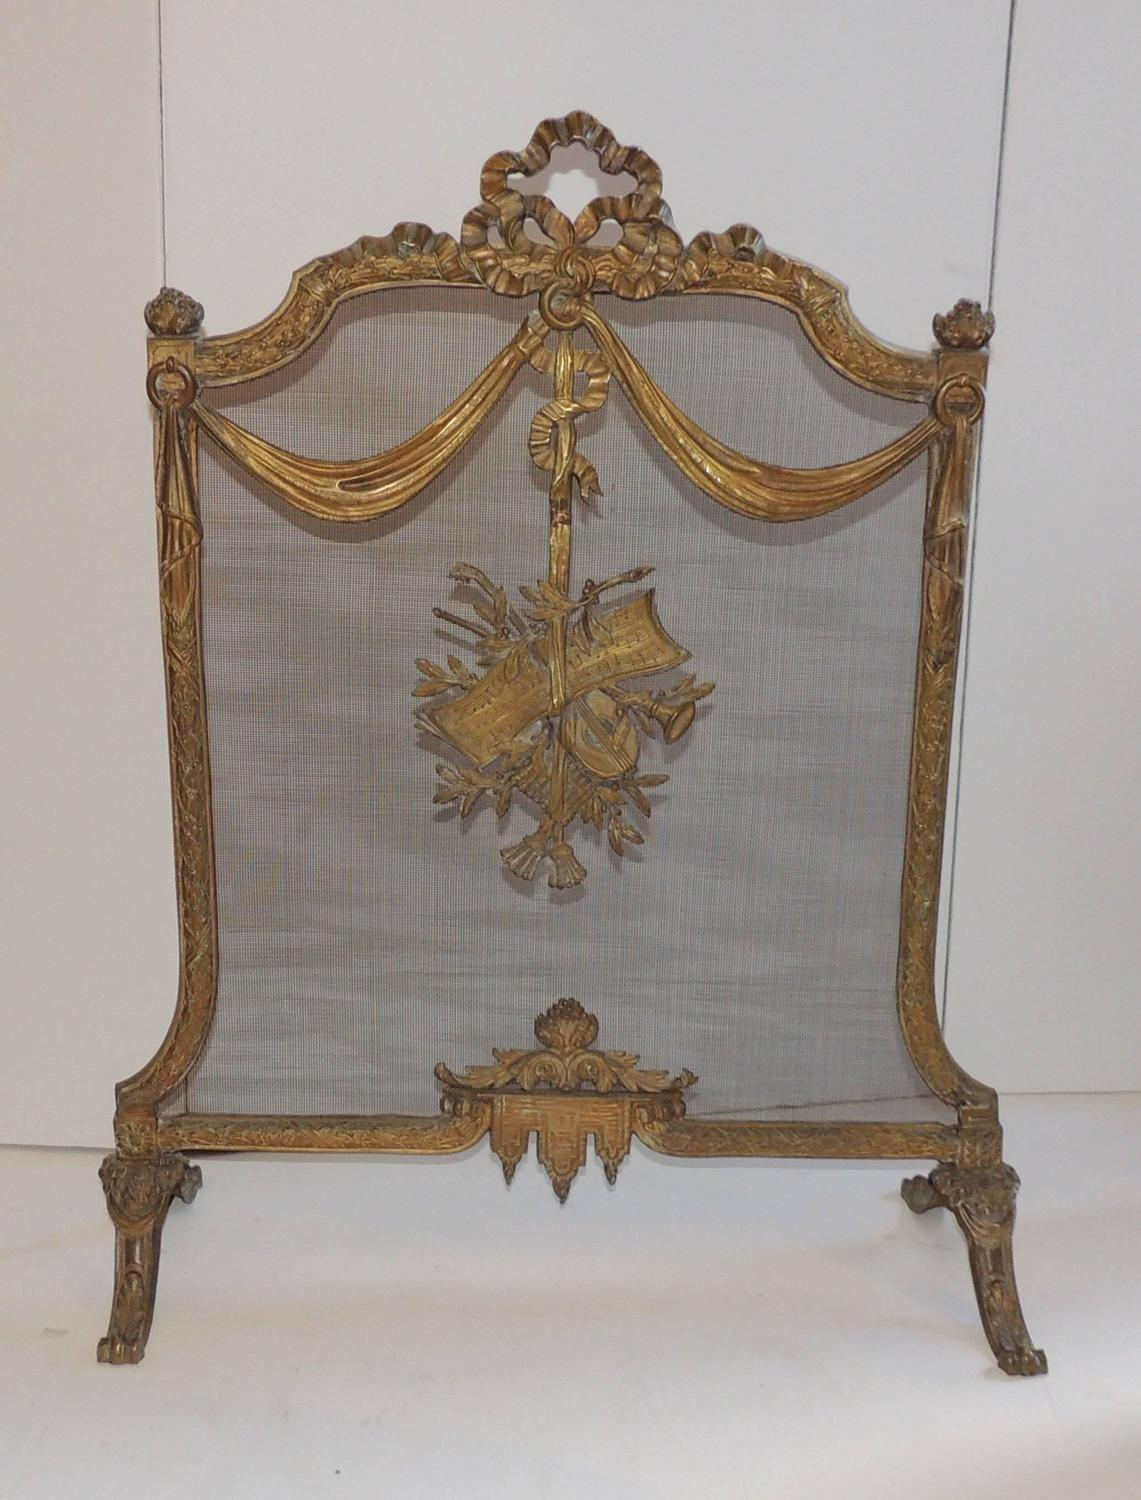 Wonderful French Bronze Bow Ribbons Floral Musical Fireplace Screen Fire Screen For Sale At 1stdibs